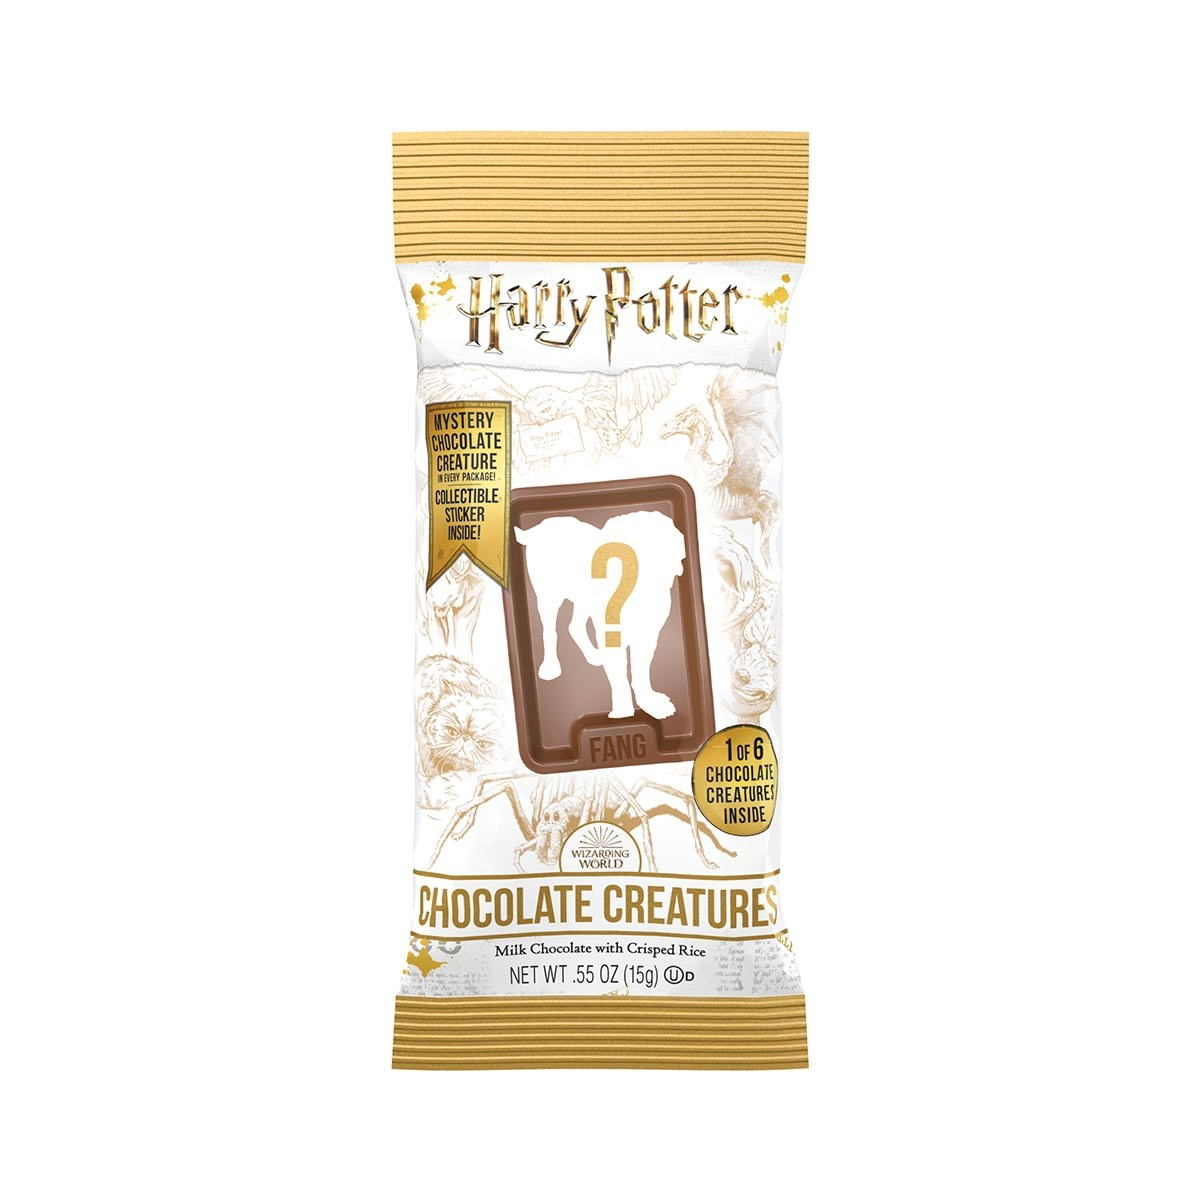 (G) HARRY POTTER CHOC CREATURES .55 OZ 24 CT